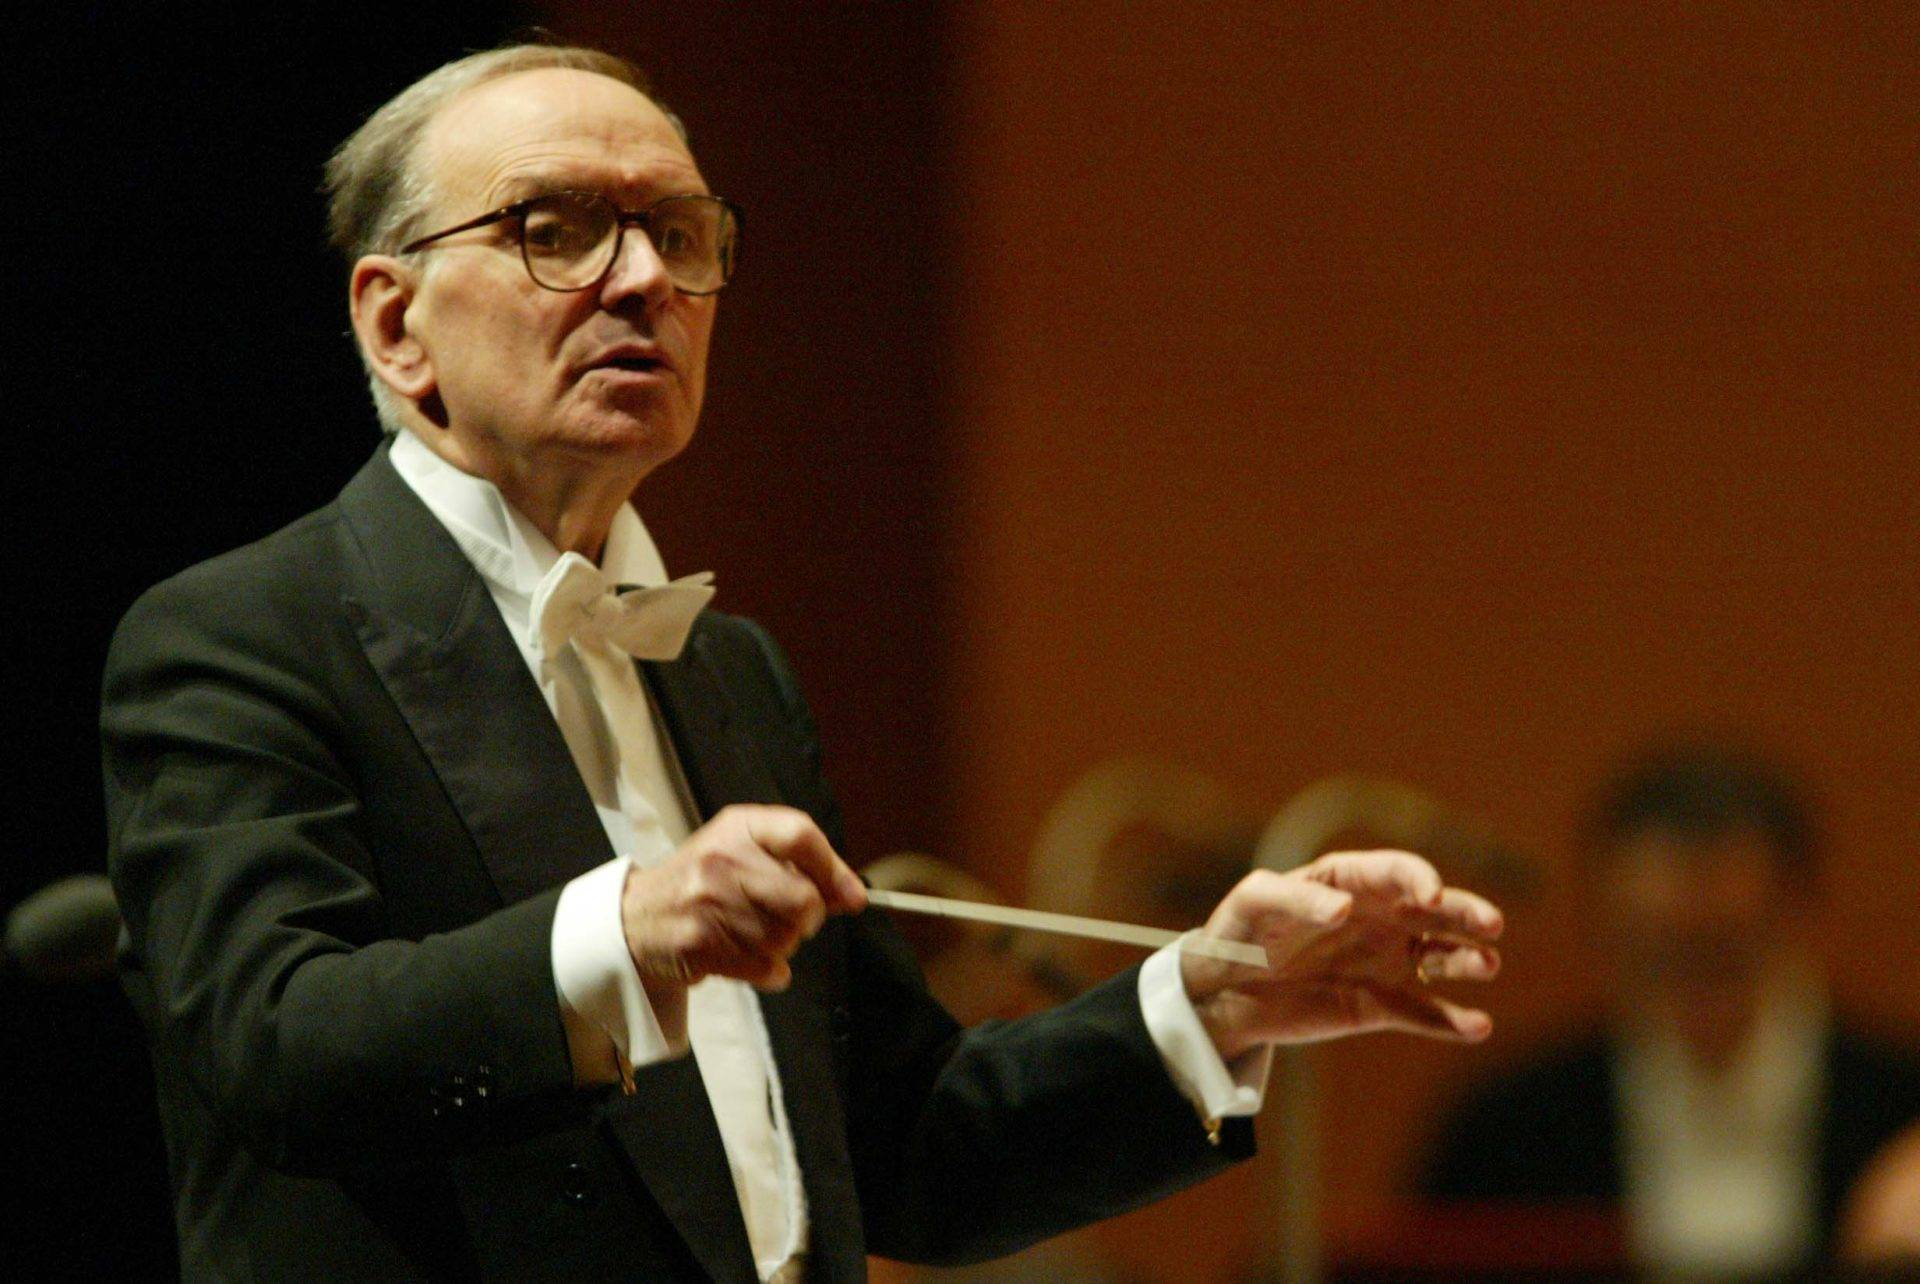 Ennio-Morricone-Conducts (1)